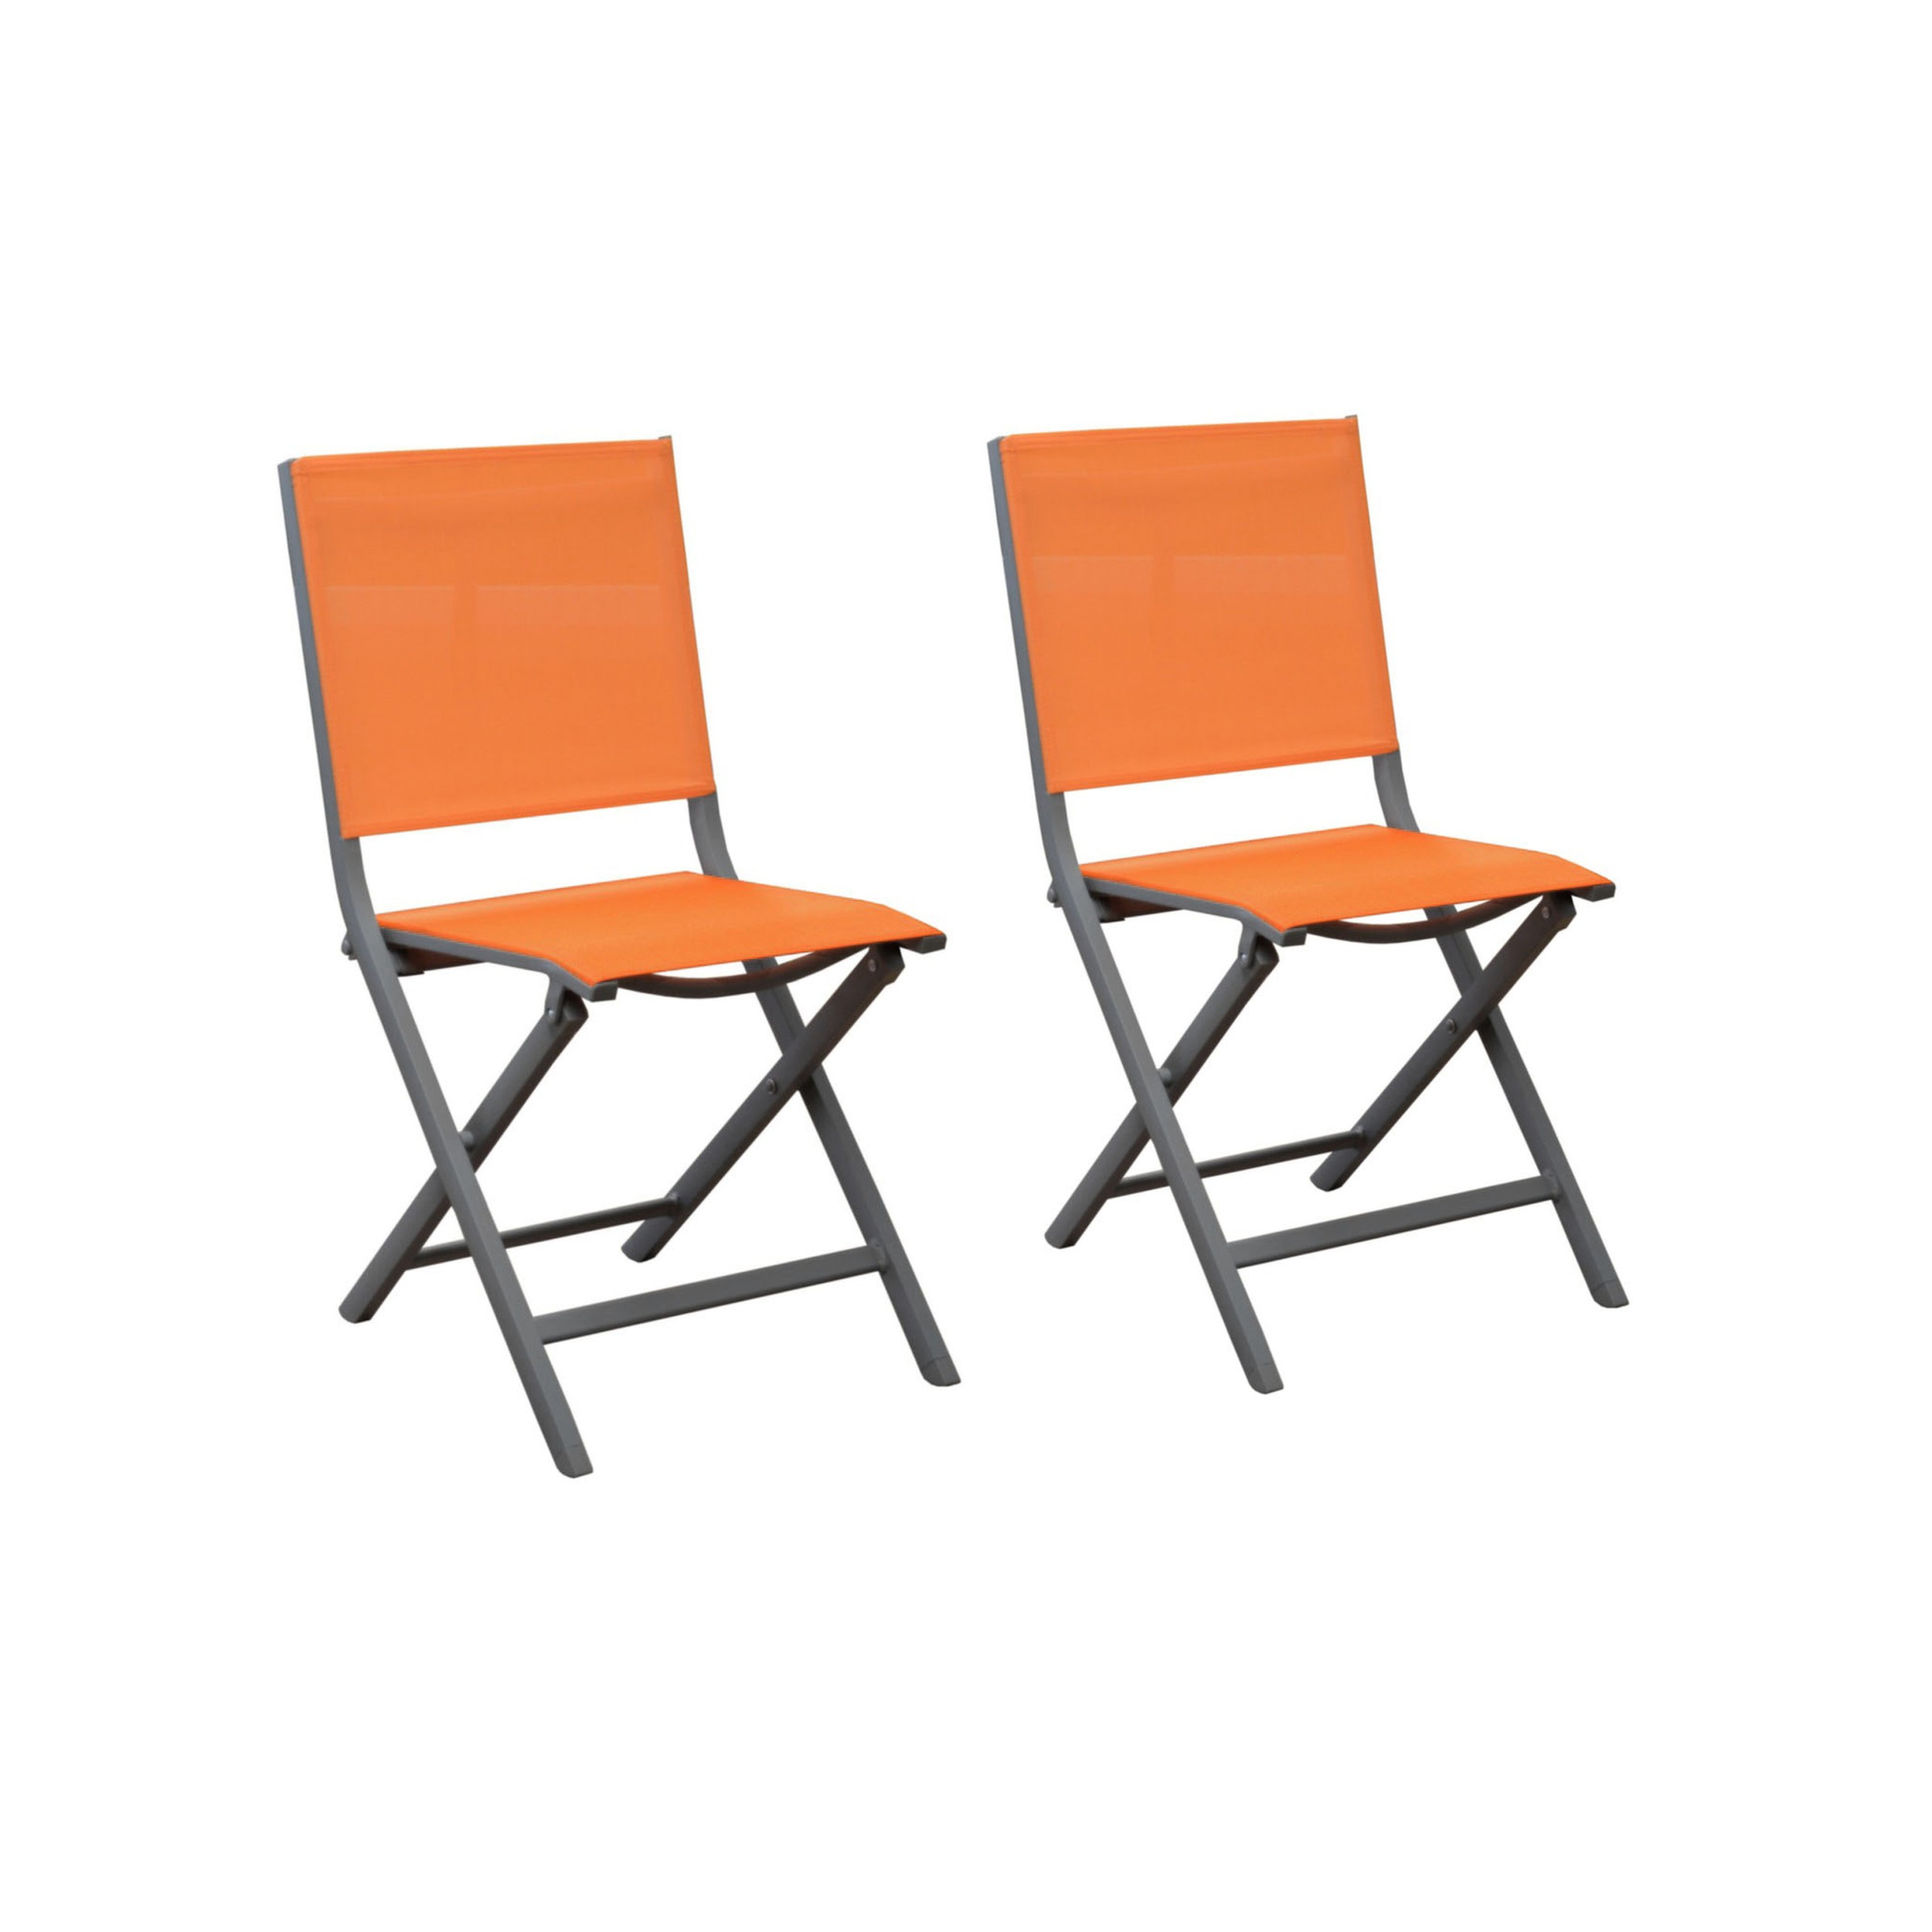 chaise de jardin terra orange lot de 2 adoptez un lot de 2 chaises de jardin terra orange. Black Bedroom Furniture Sets. Home Design Ideas